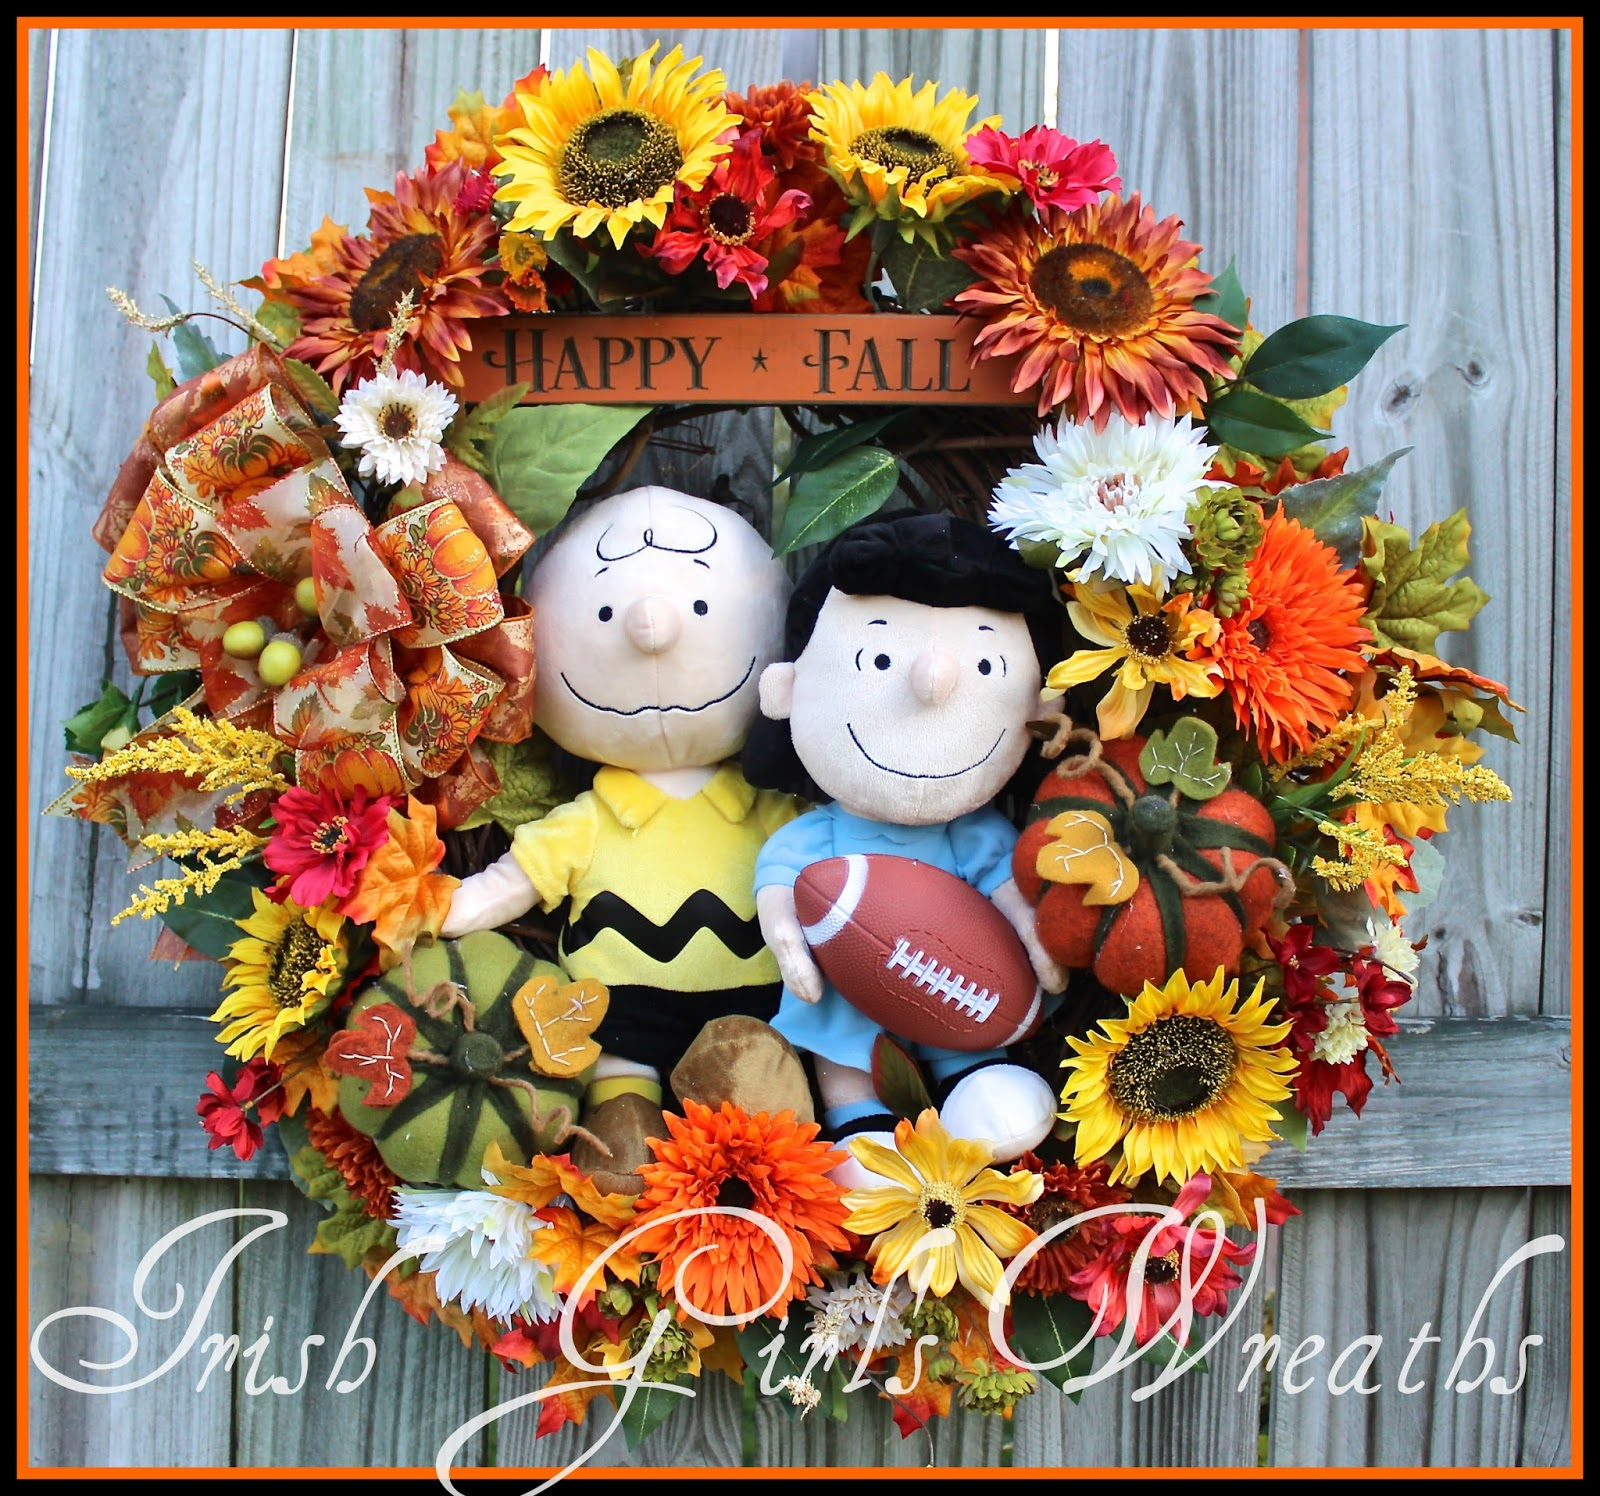 Charlie Brown & Lucy with Football Happy Fall Wreath, Peanuts Wreath, large, Sunflower, felt covered Pumpkins